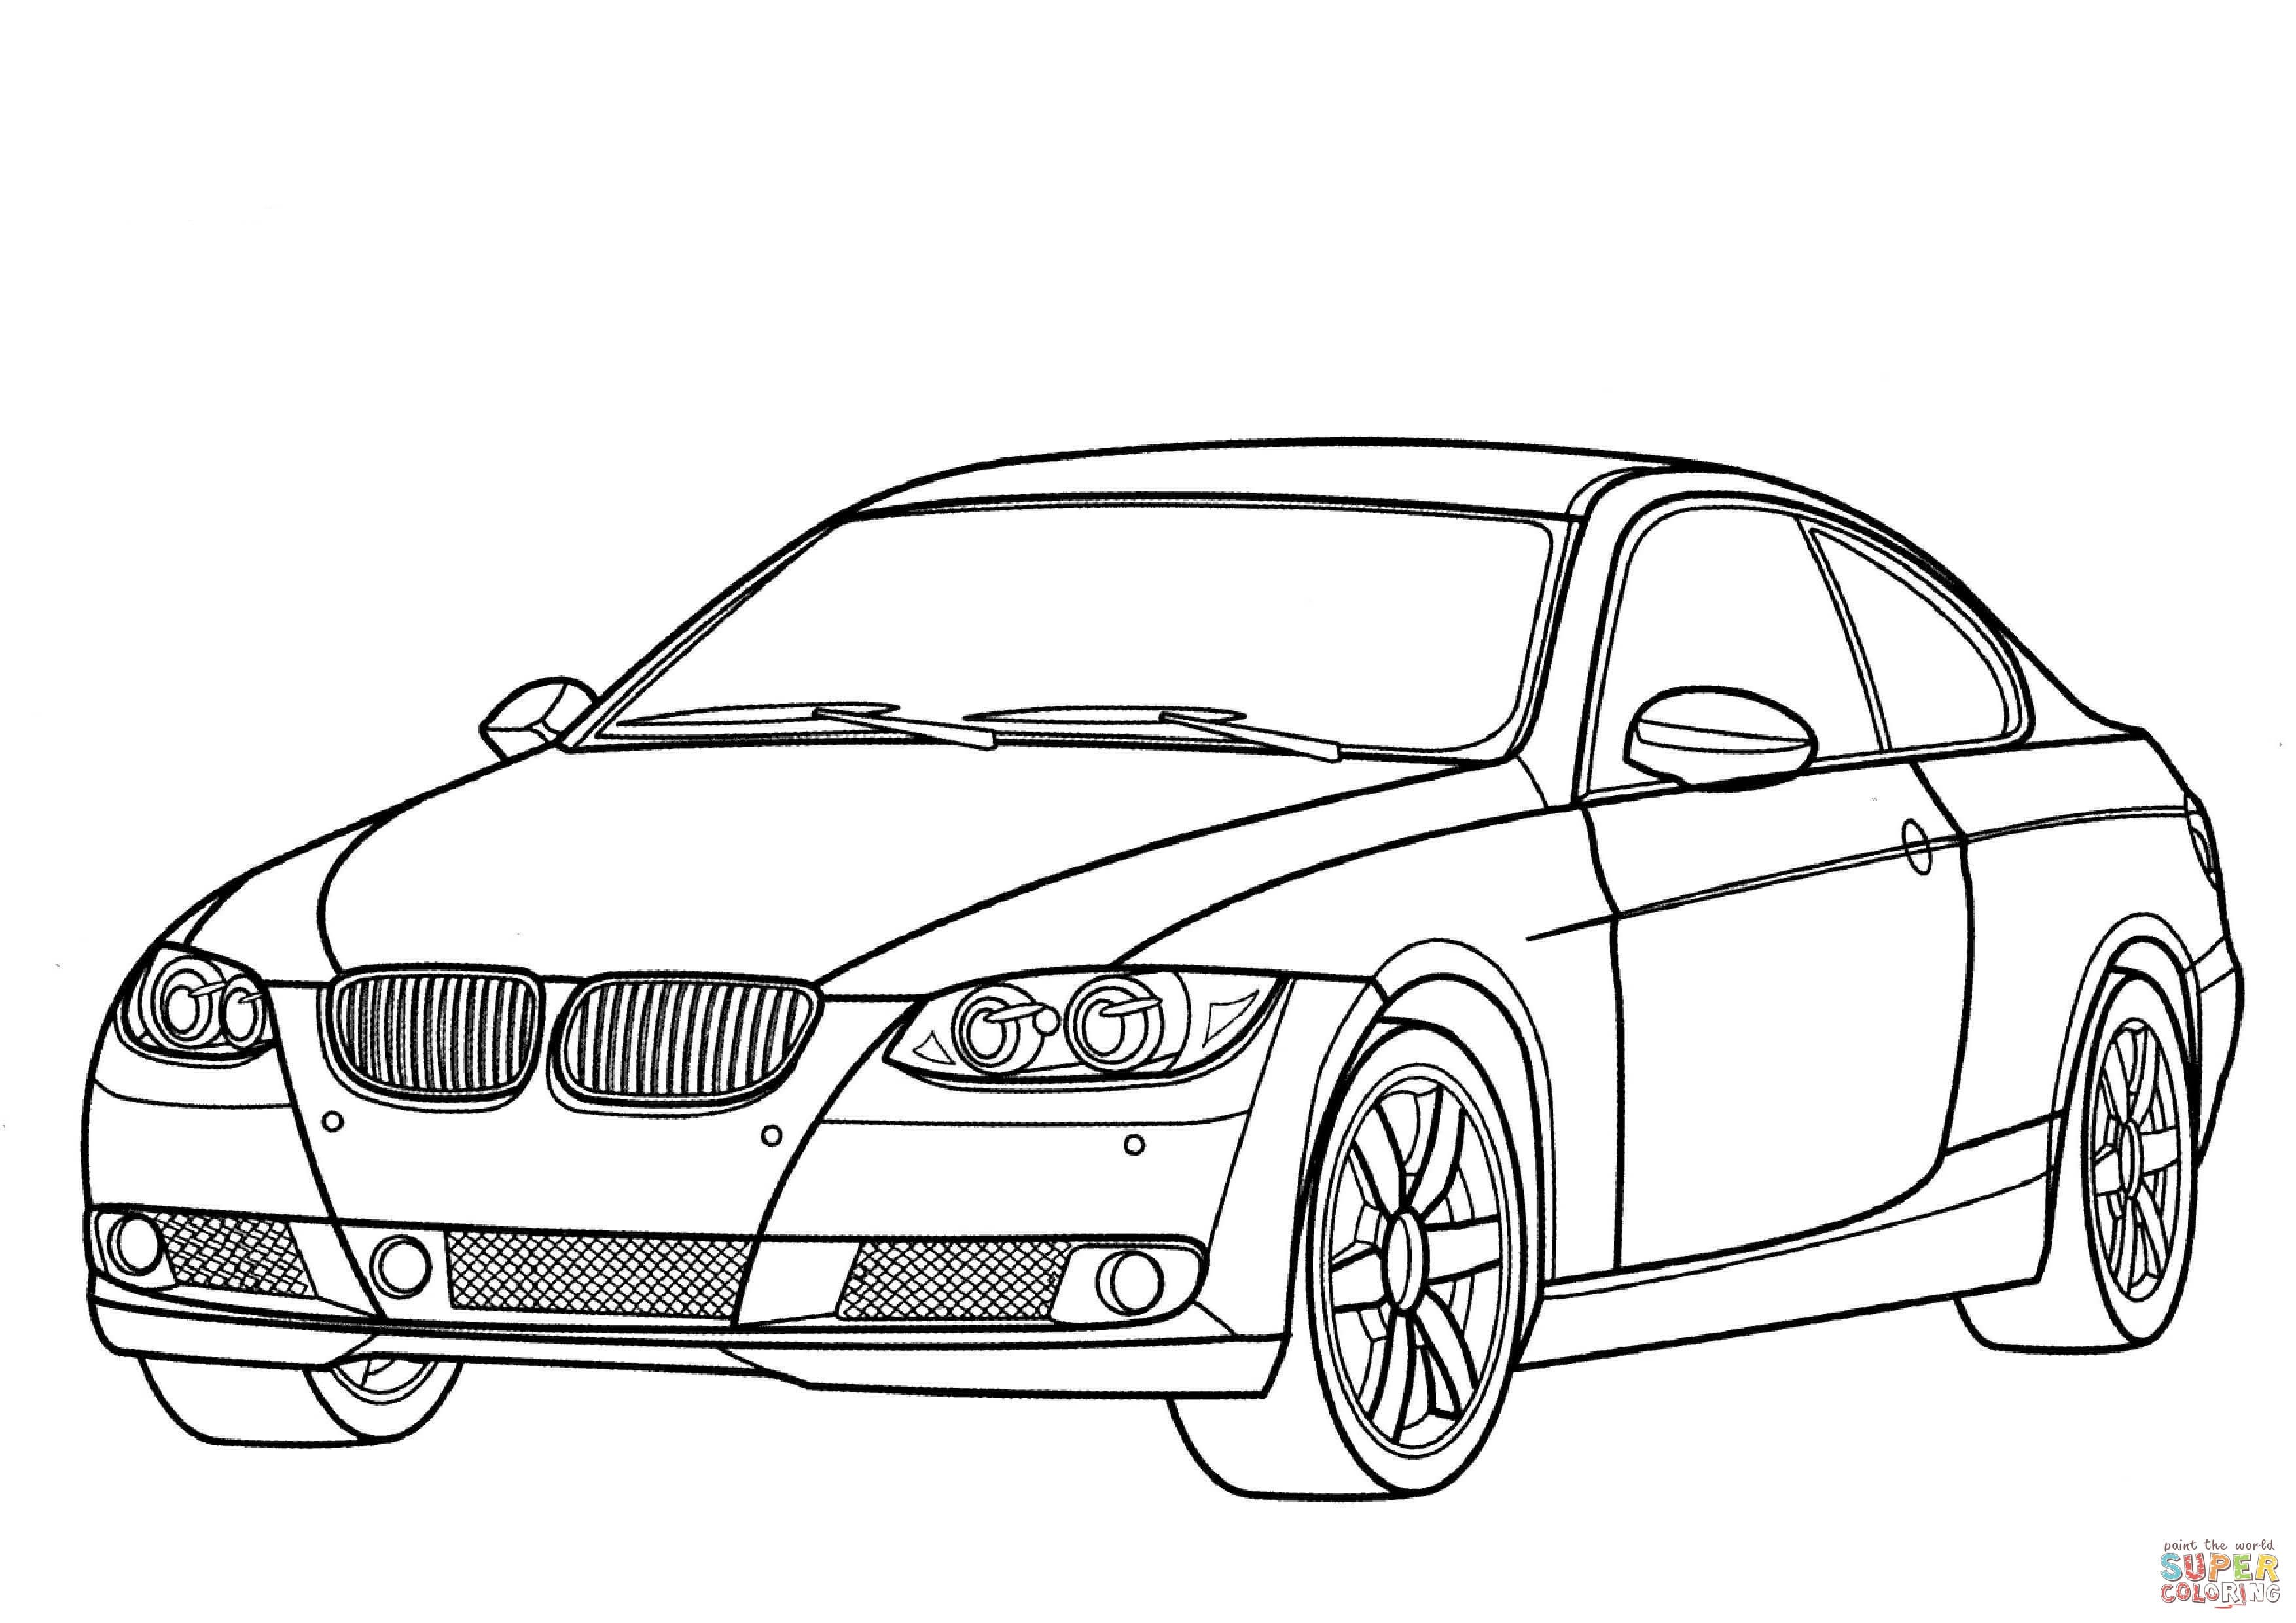 3508x2480 Super Car Bmw 750il Coloring Page For Kids Beautiful Bmw Car